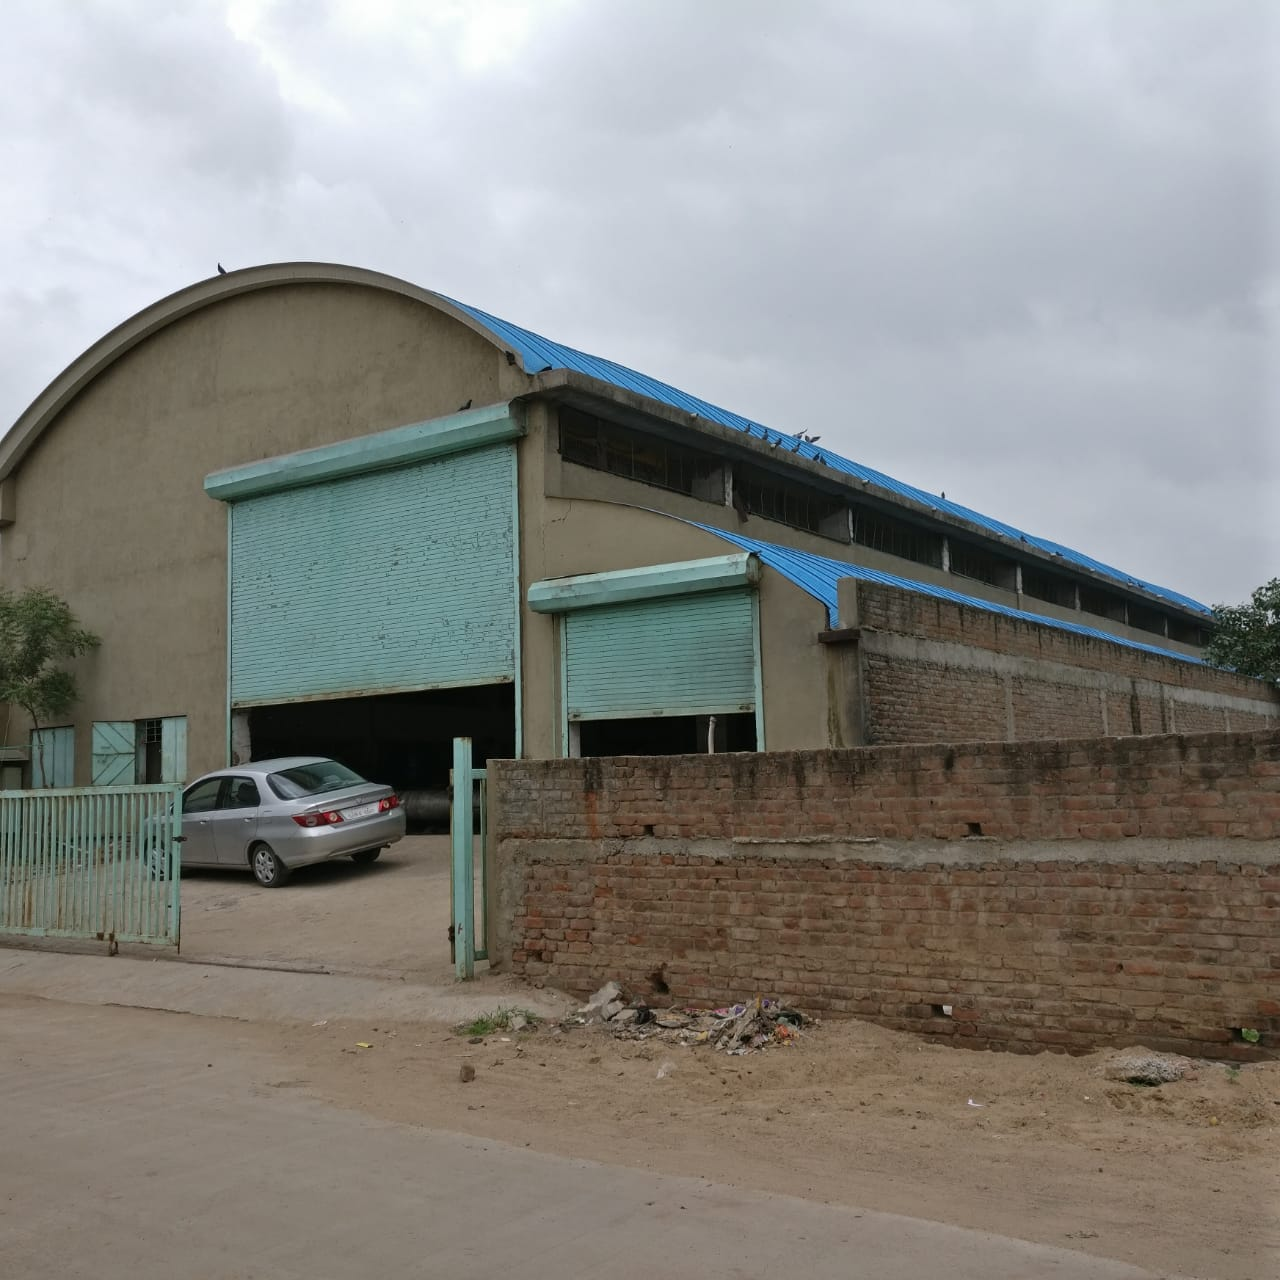 90000 TO 200000 INDUSTRIAL SHED | FACTORY FOR RENT | LEASE IN CHANGODAR G.I.D.C. AHMEDABAD – 7043395463